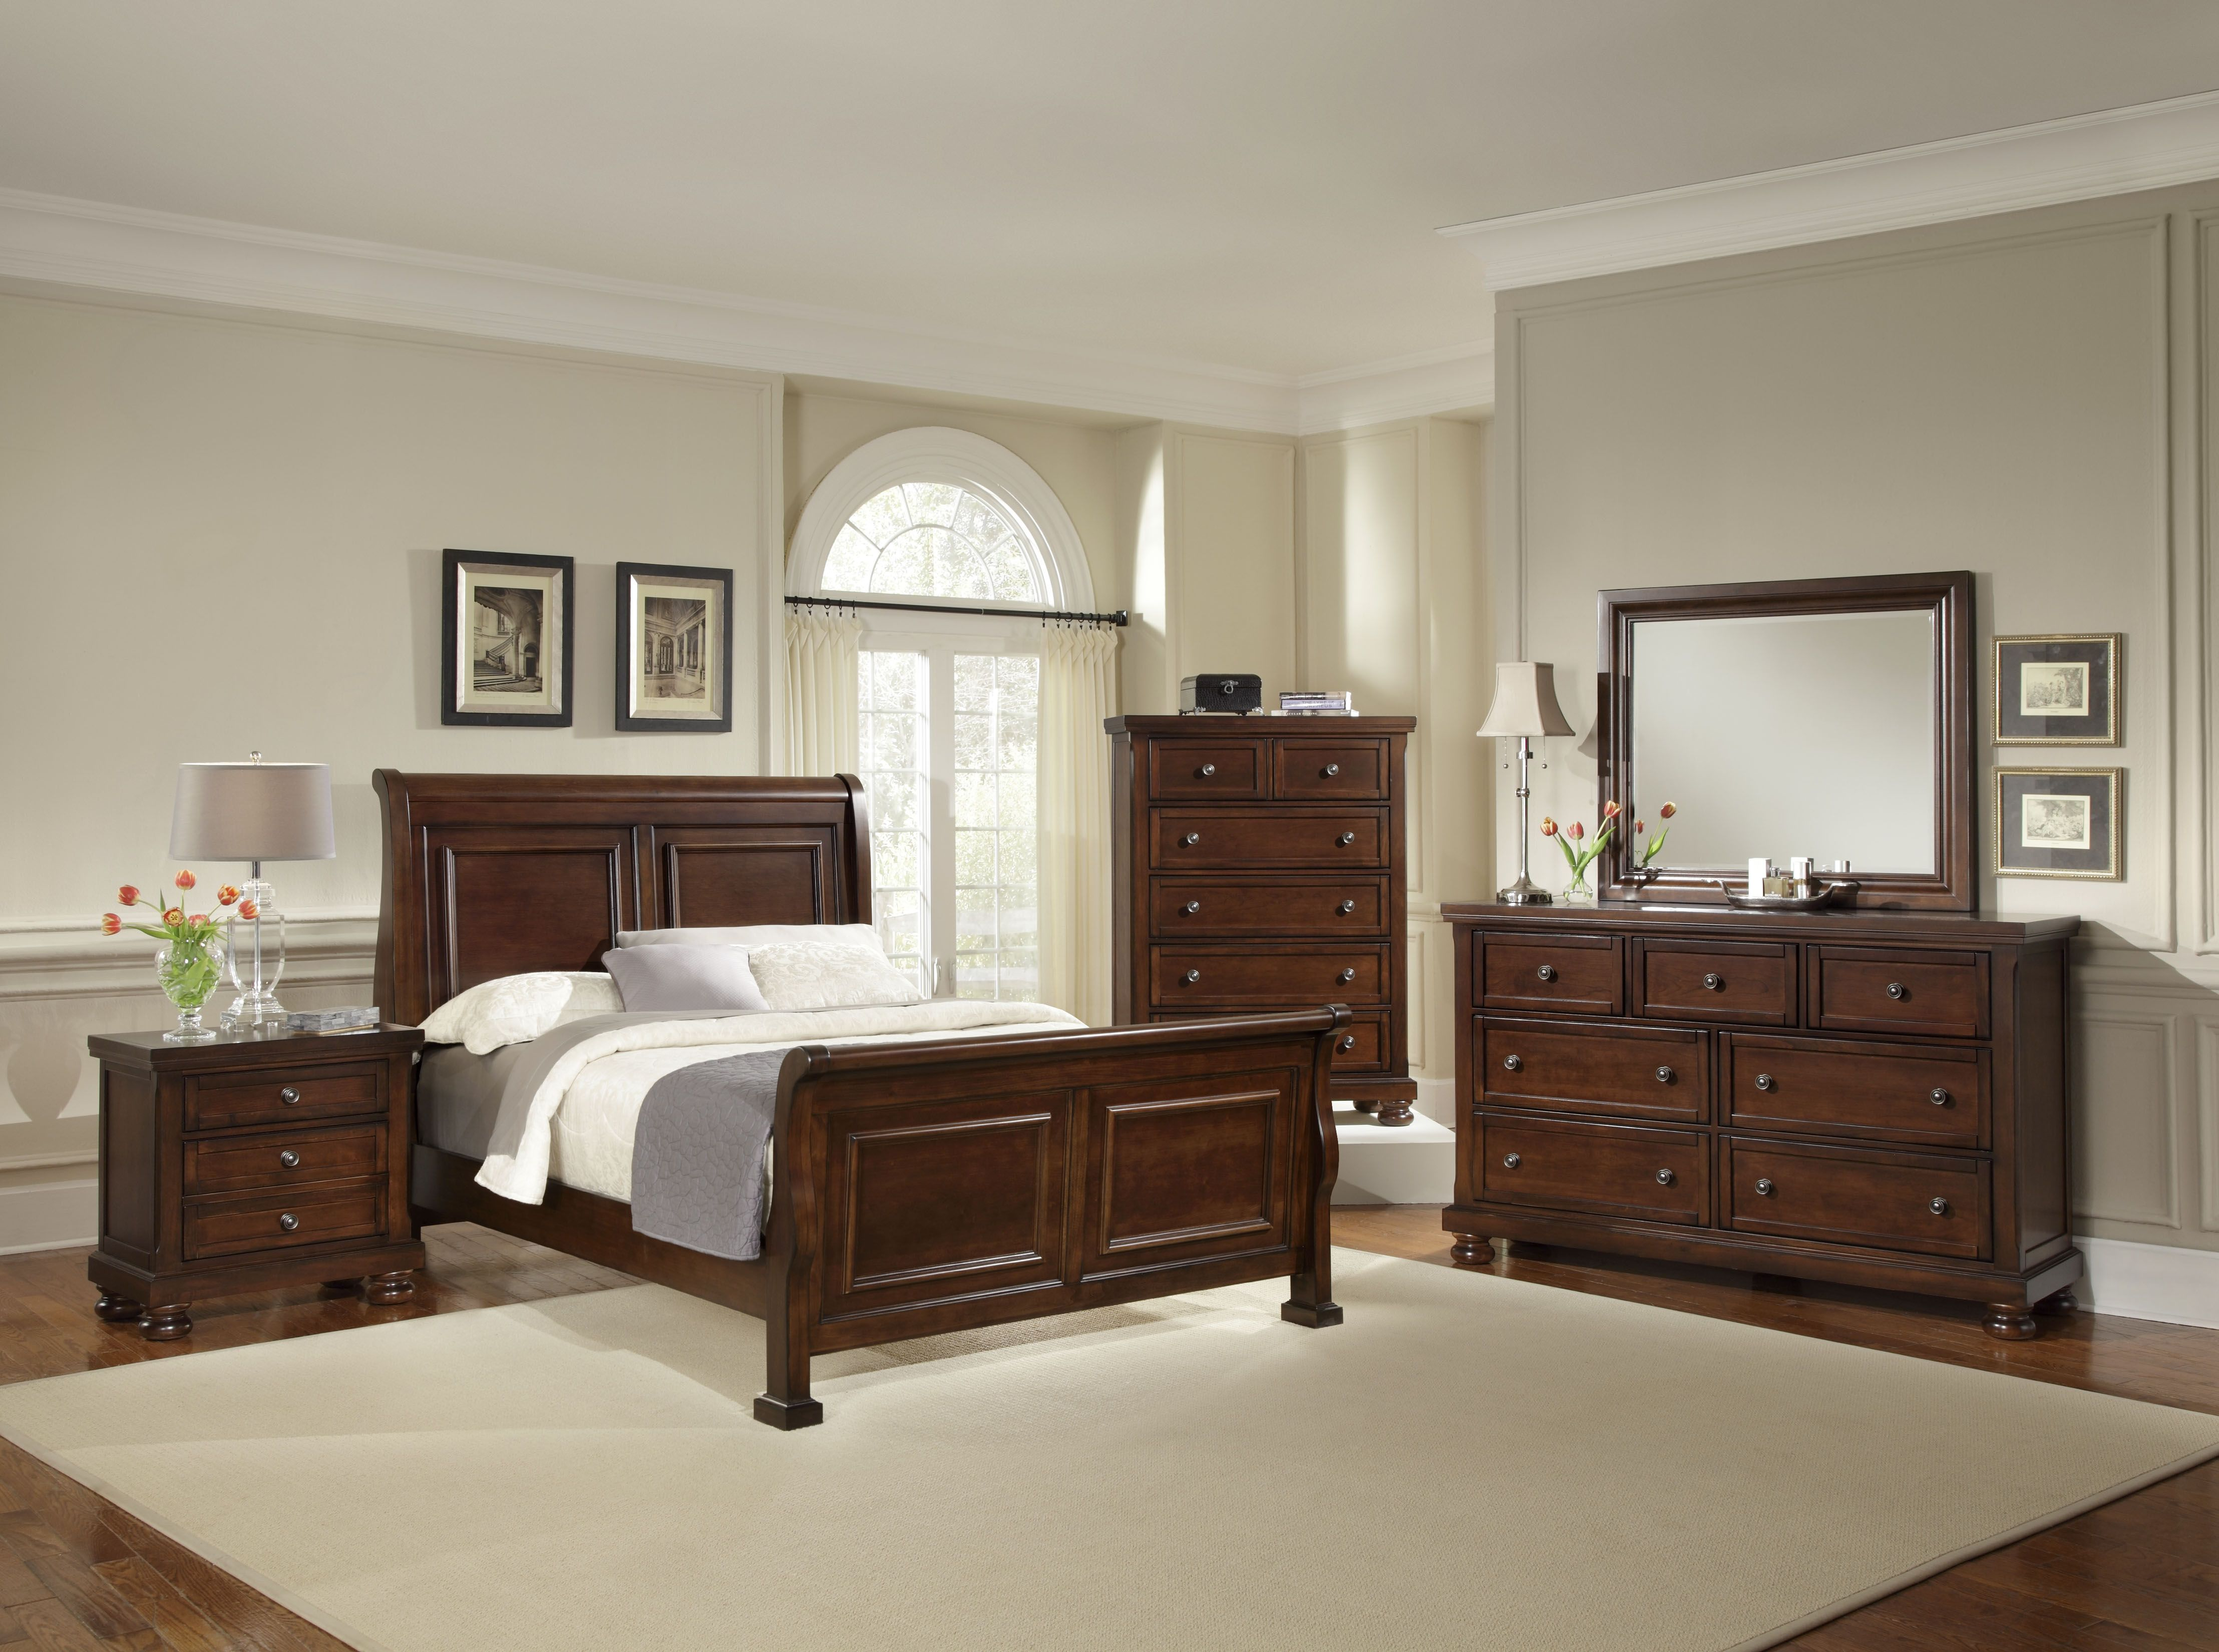 This beautiful bedroom features thoughtful detail and